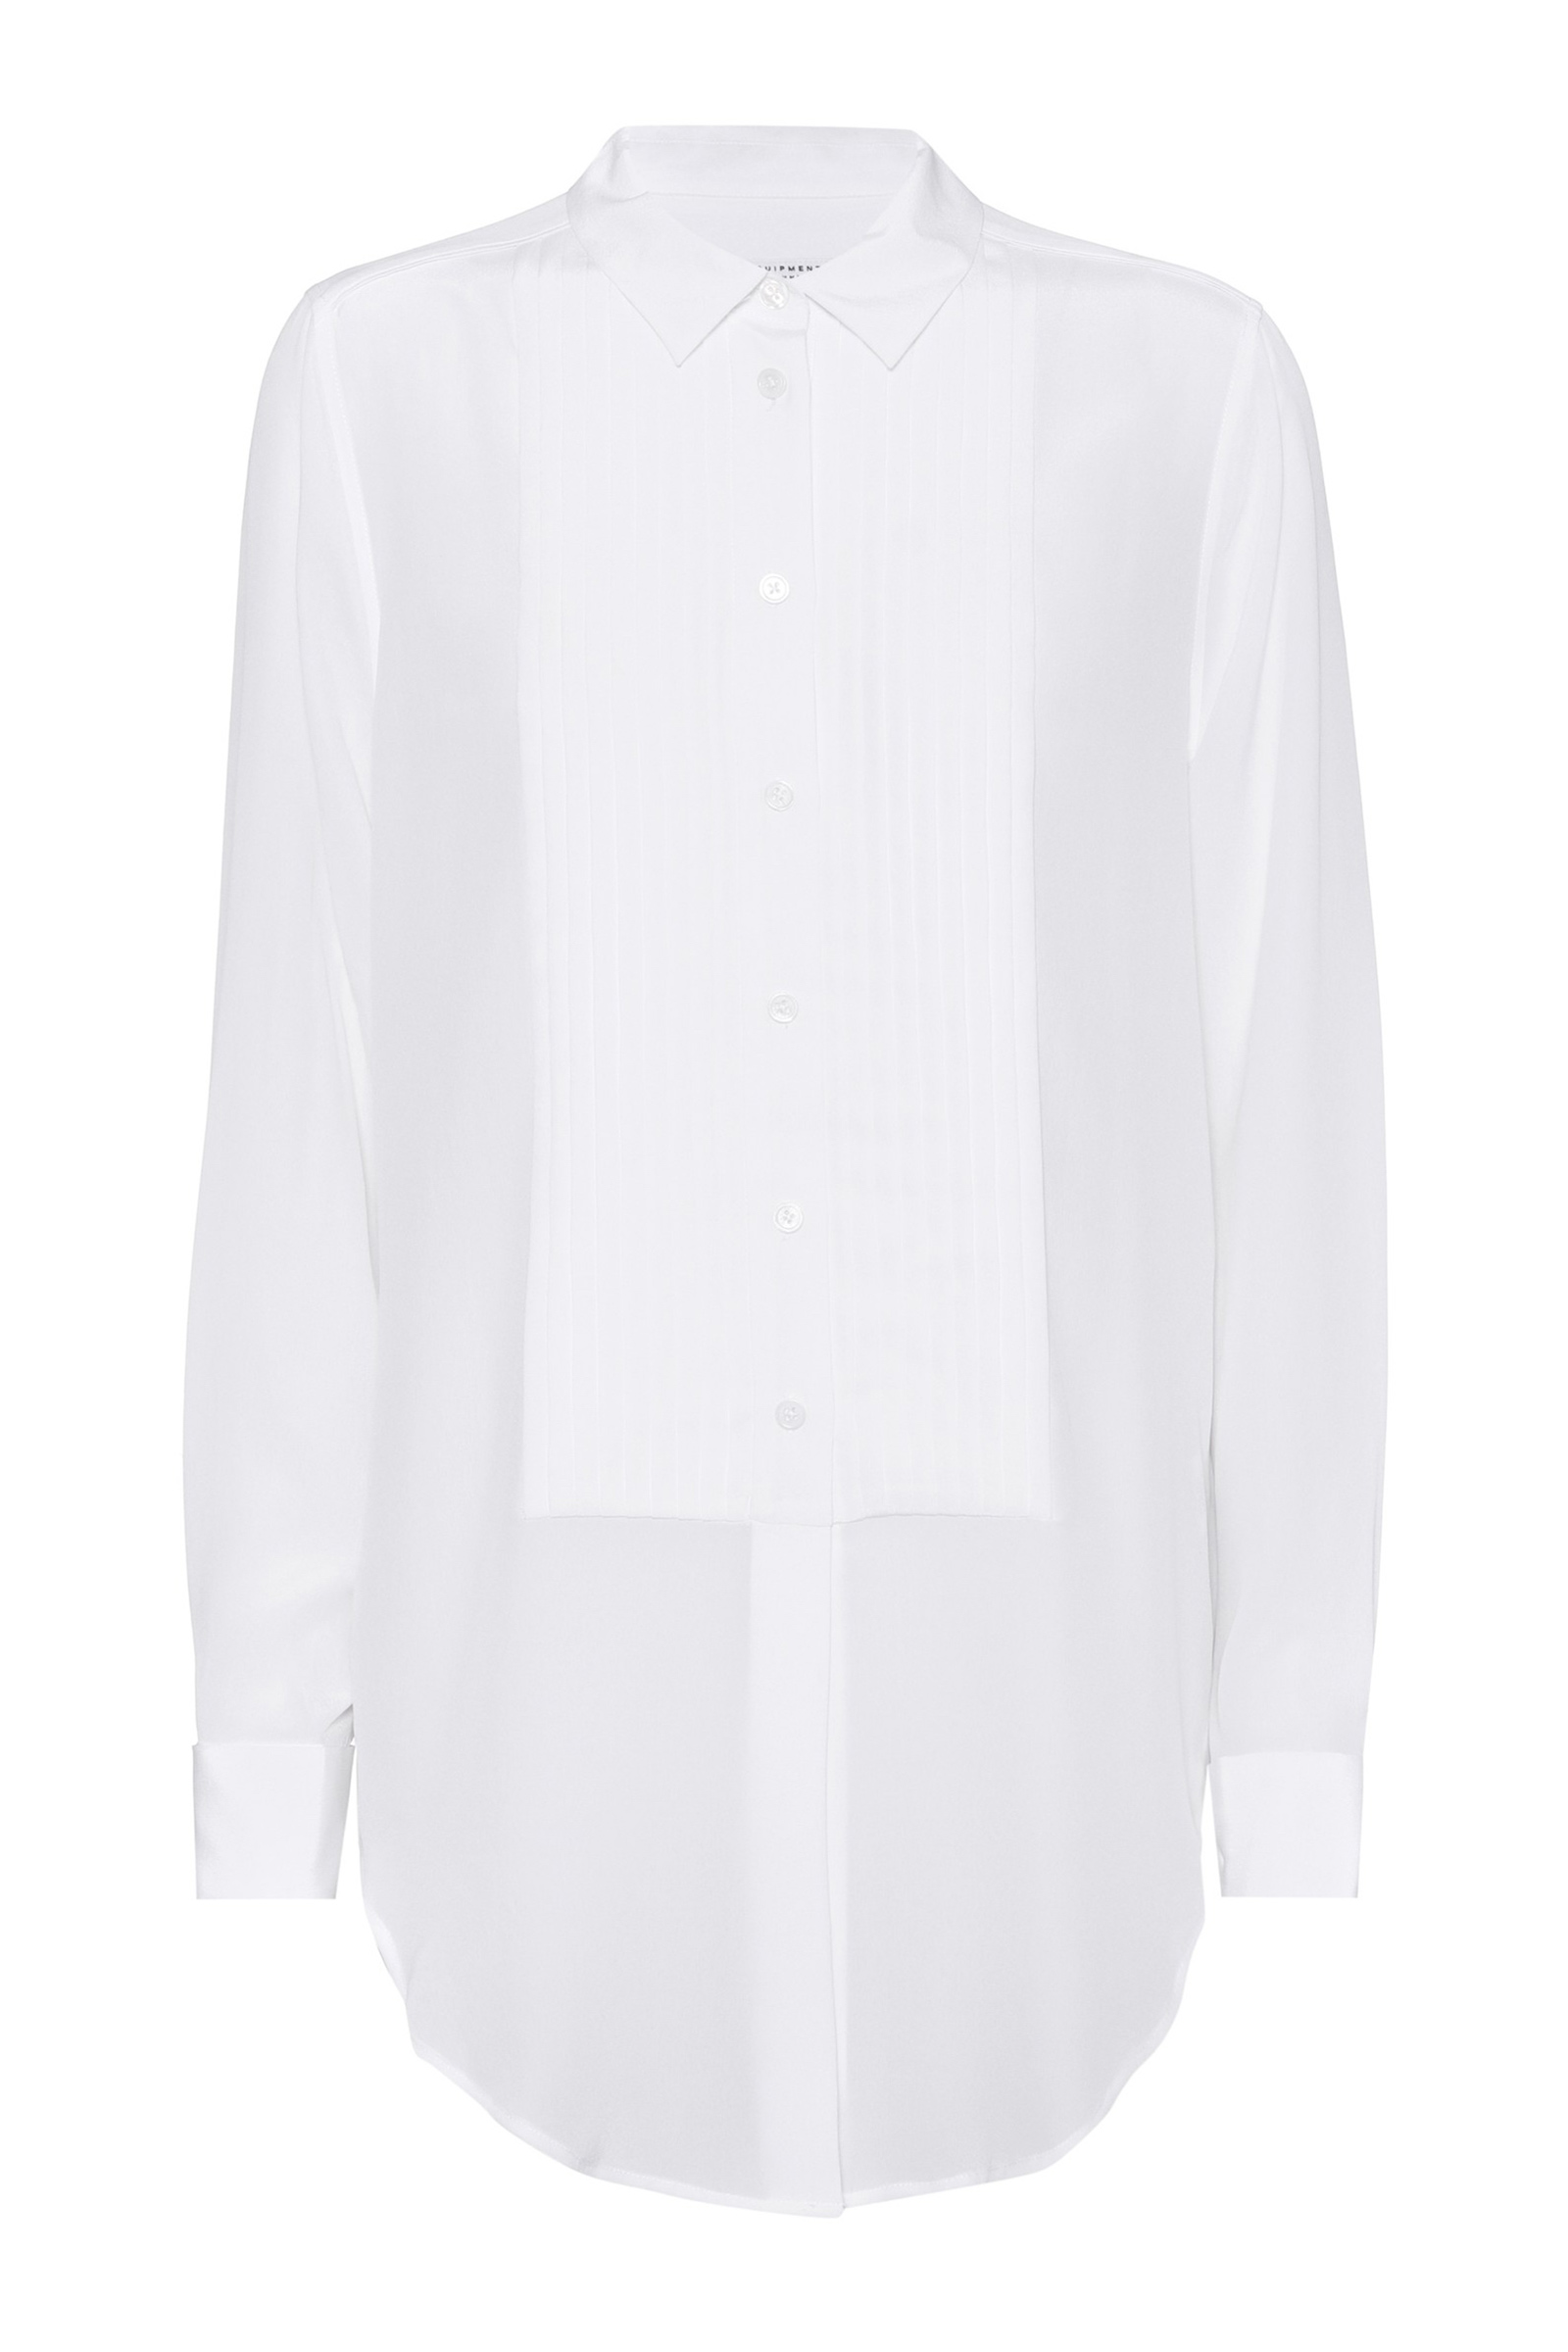 Click to Buy Equipment White Shirt